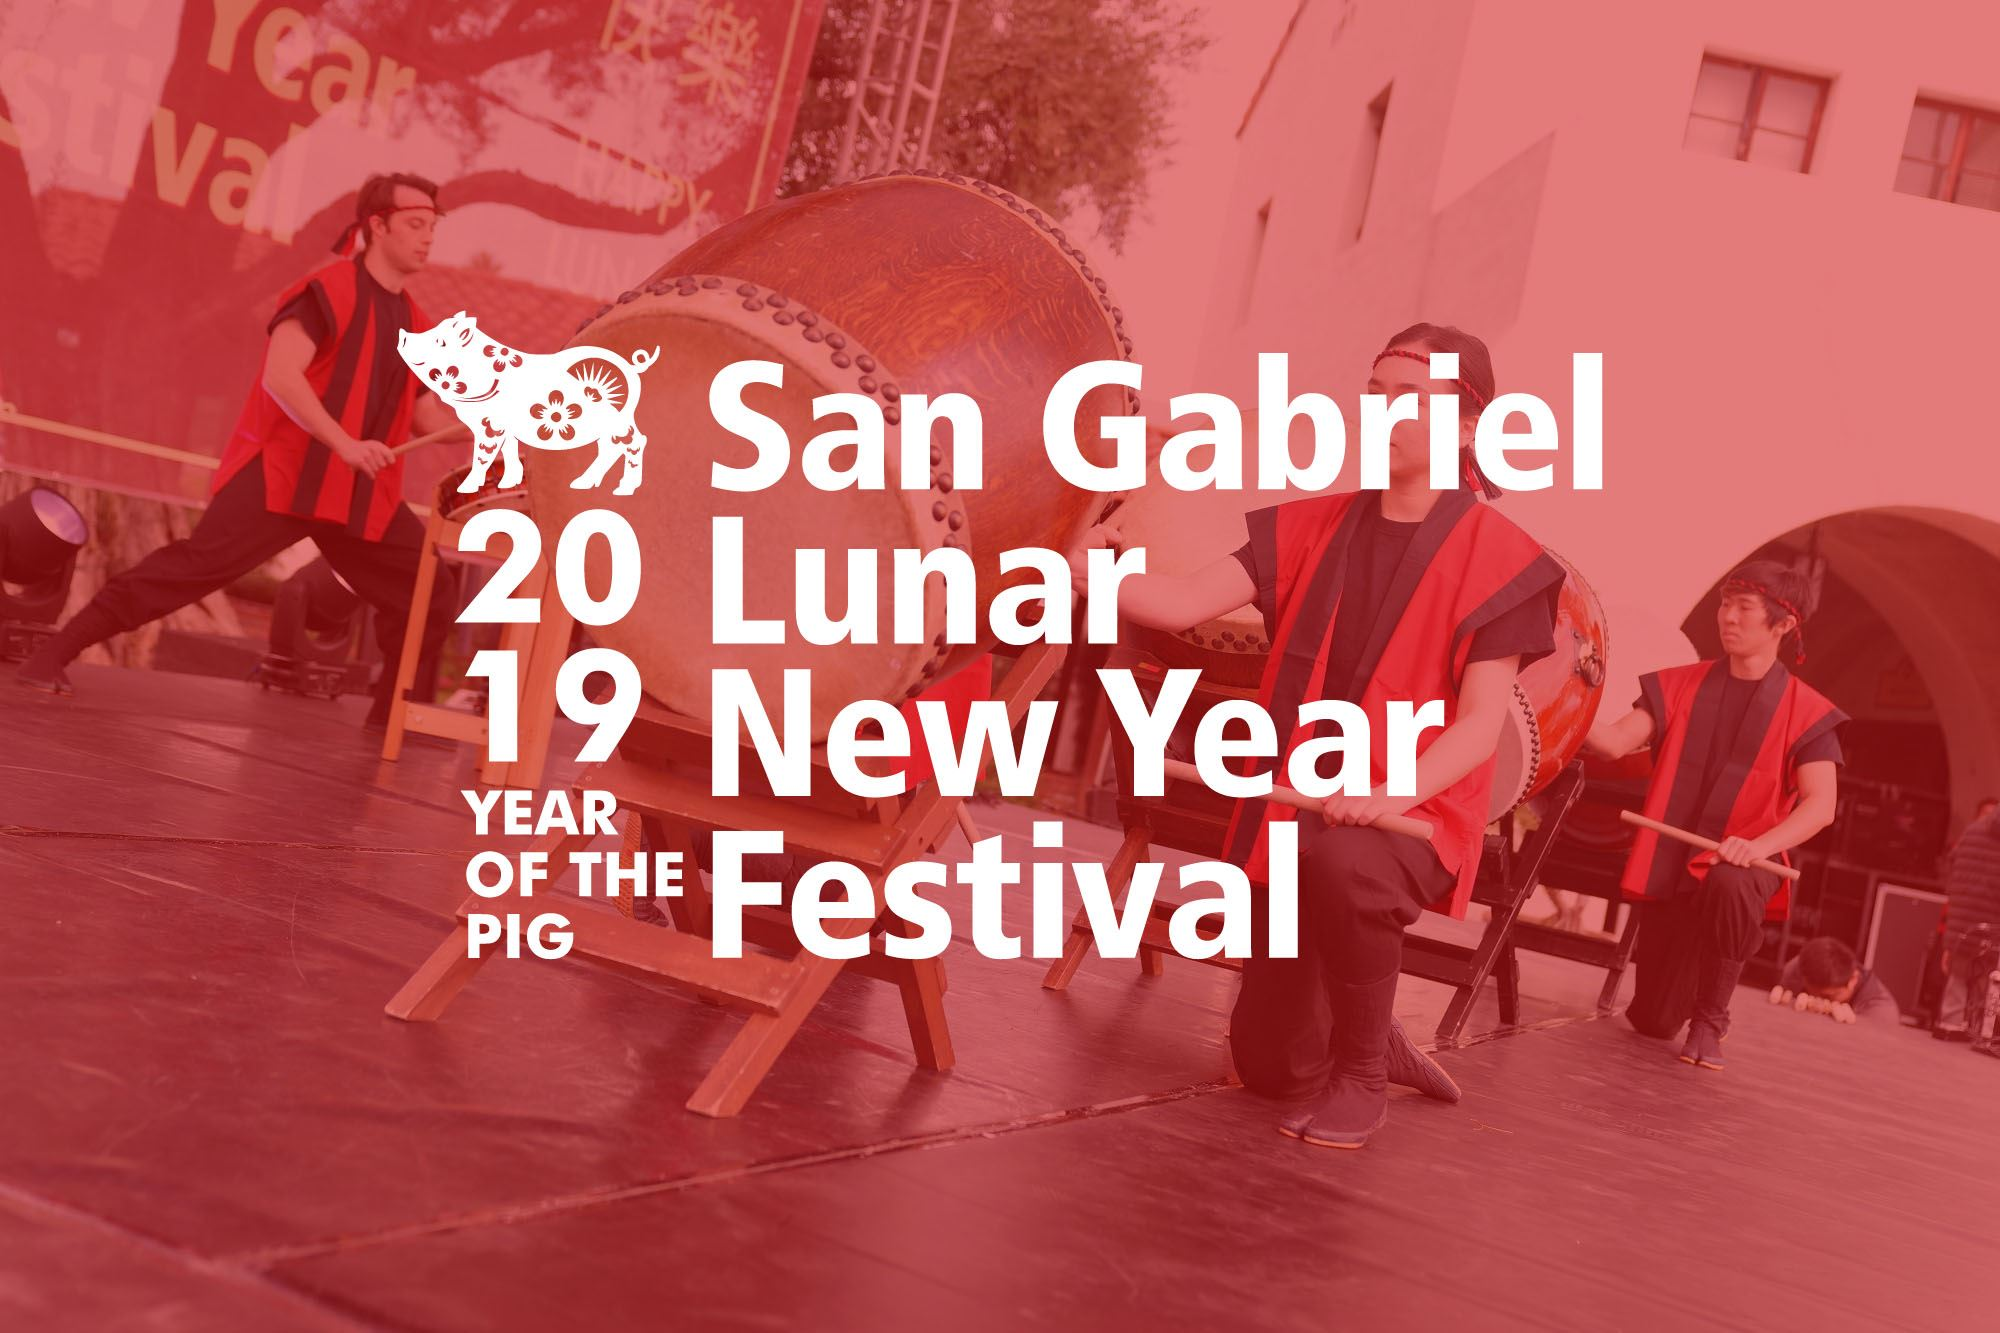 Here's your guide for the 2019 San Gabriel Lunar New Year Festival